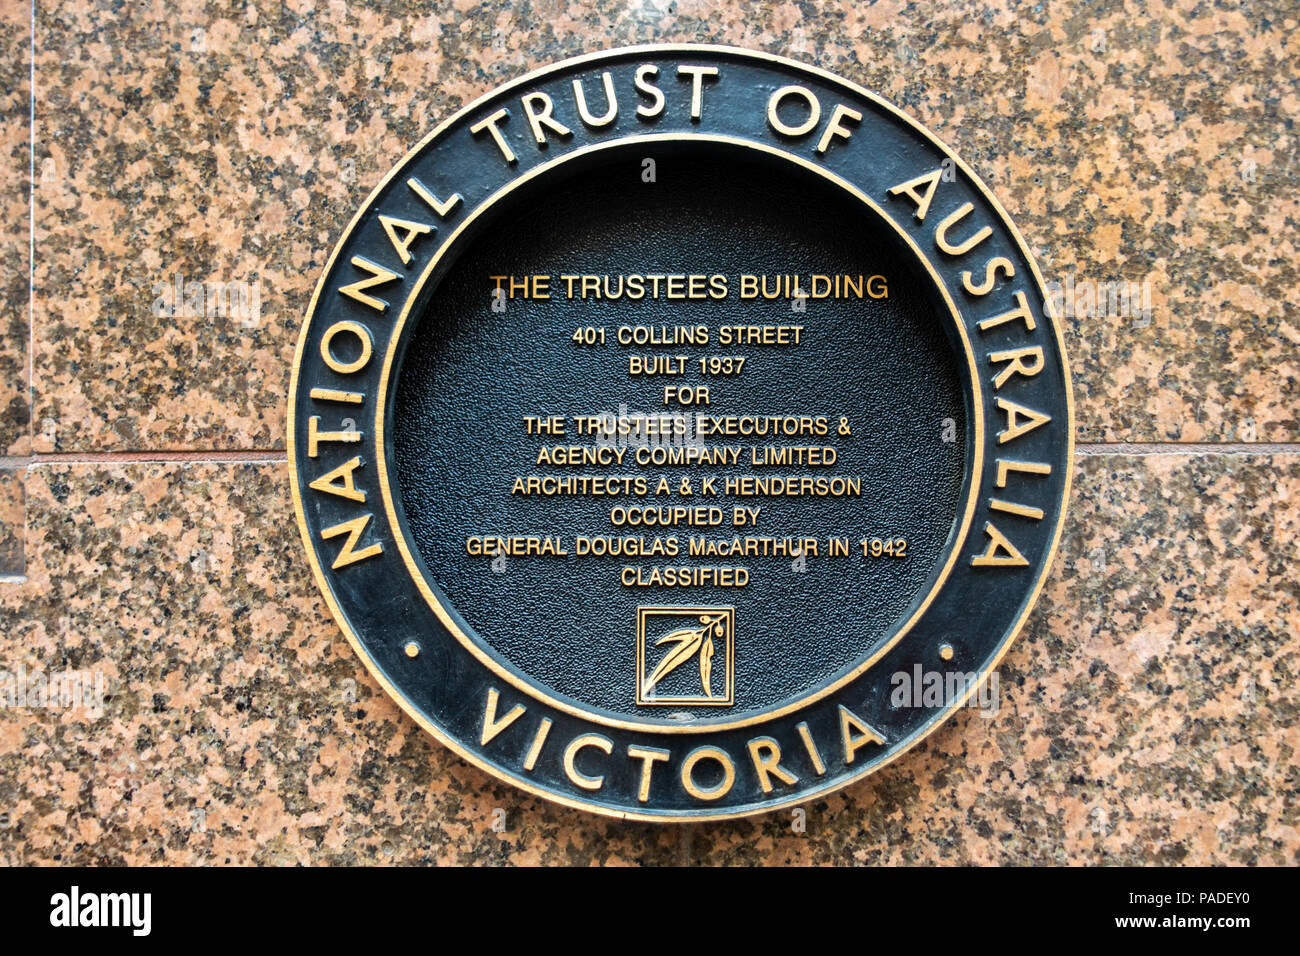 Sign of National Trust of Australia on the historic Trustees Building at 401 Collins Street. City of Melbourne, VIC Australia. - Stock Image